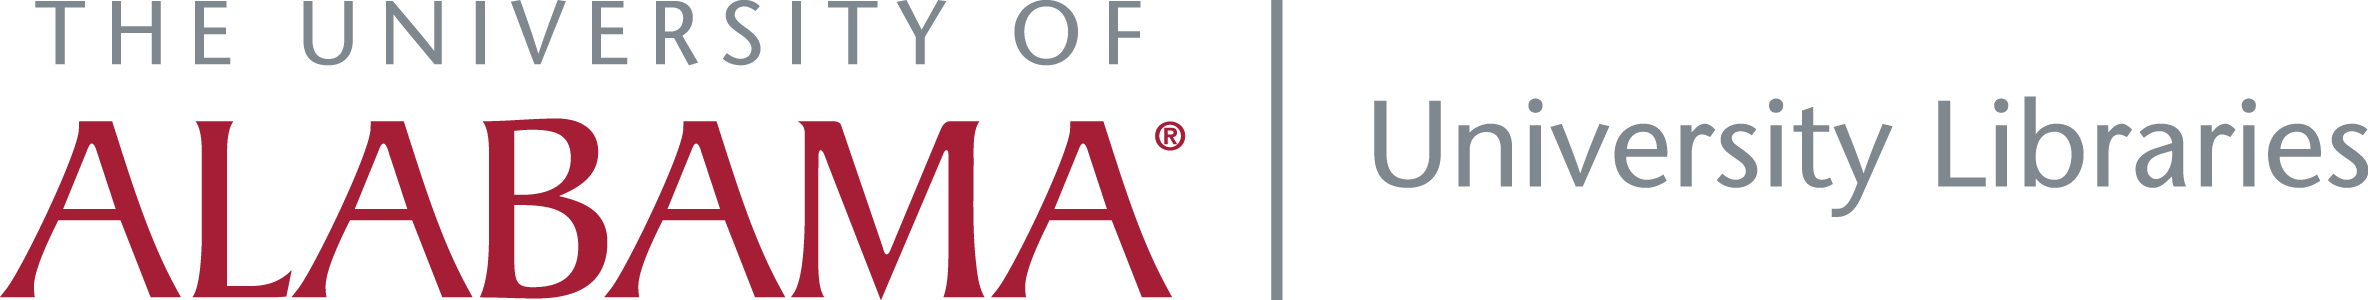 Alabama University Libraries Identifier.